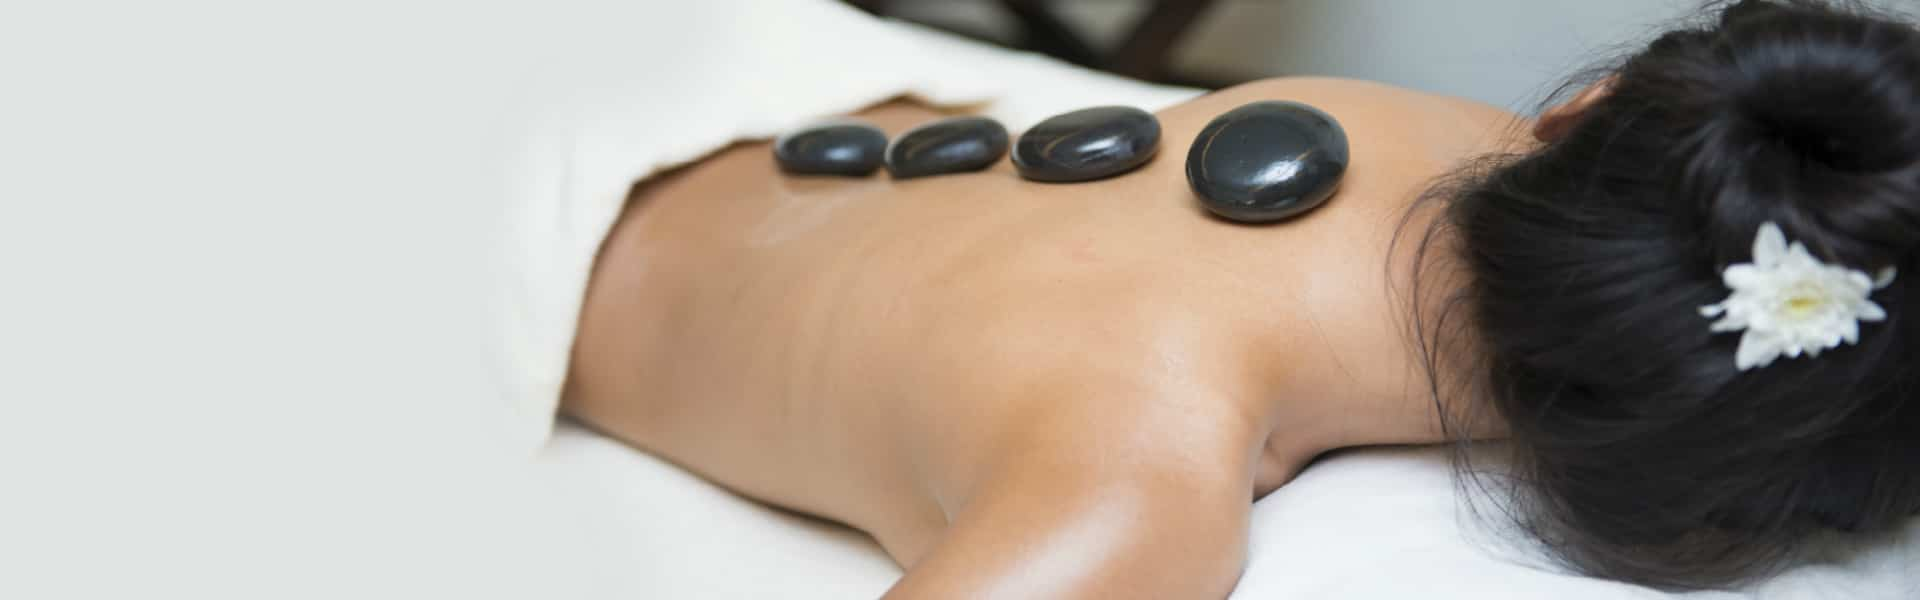 Body massage in scarborough : Jewelry online free shipping